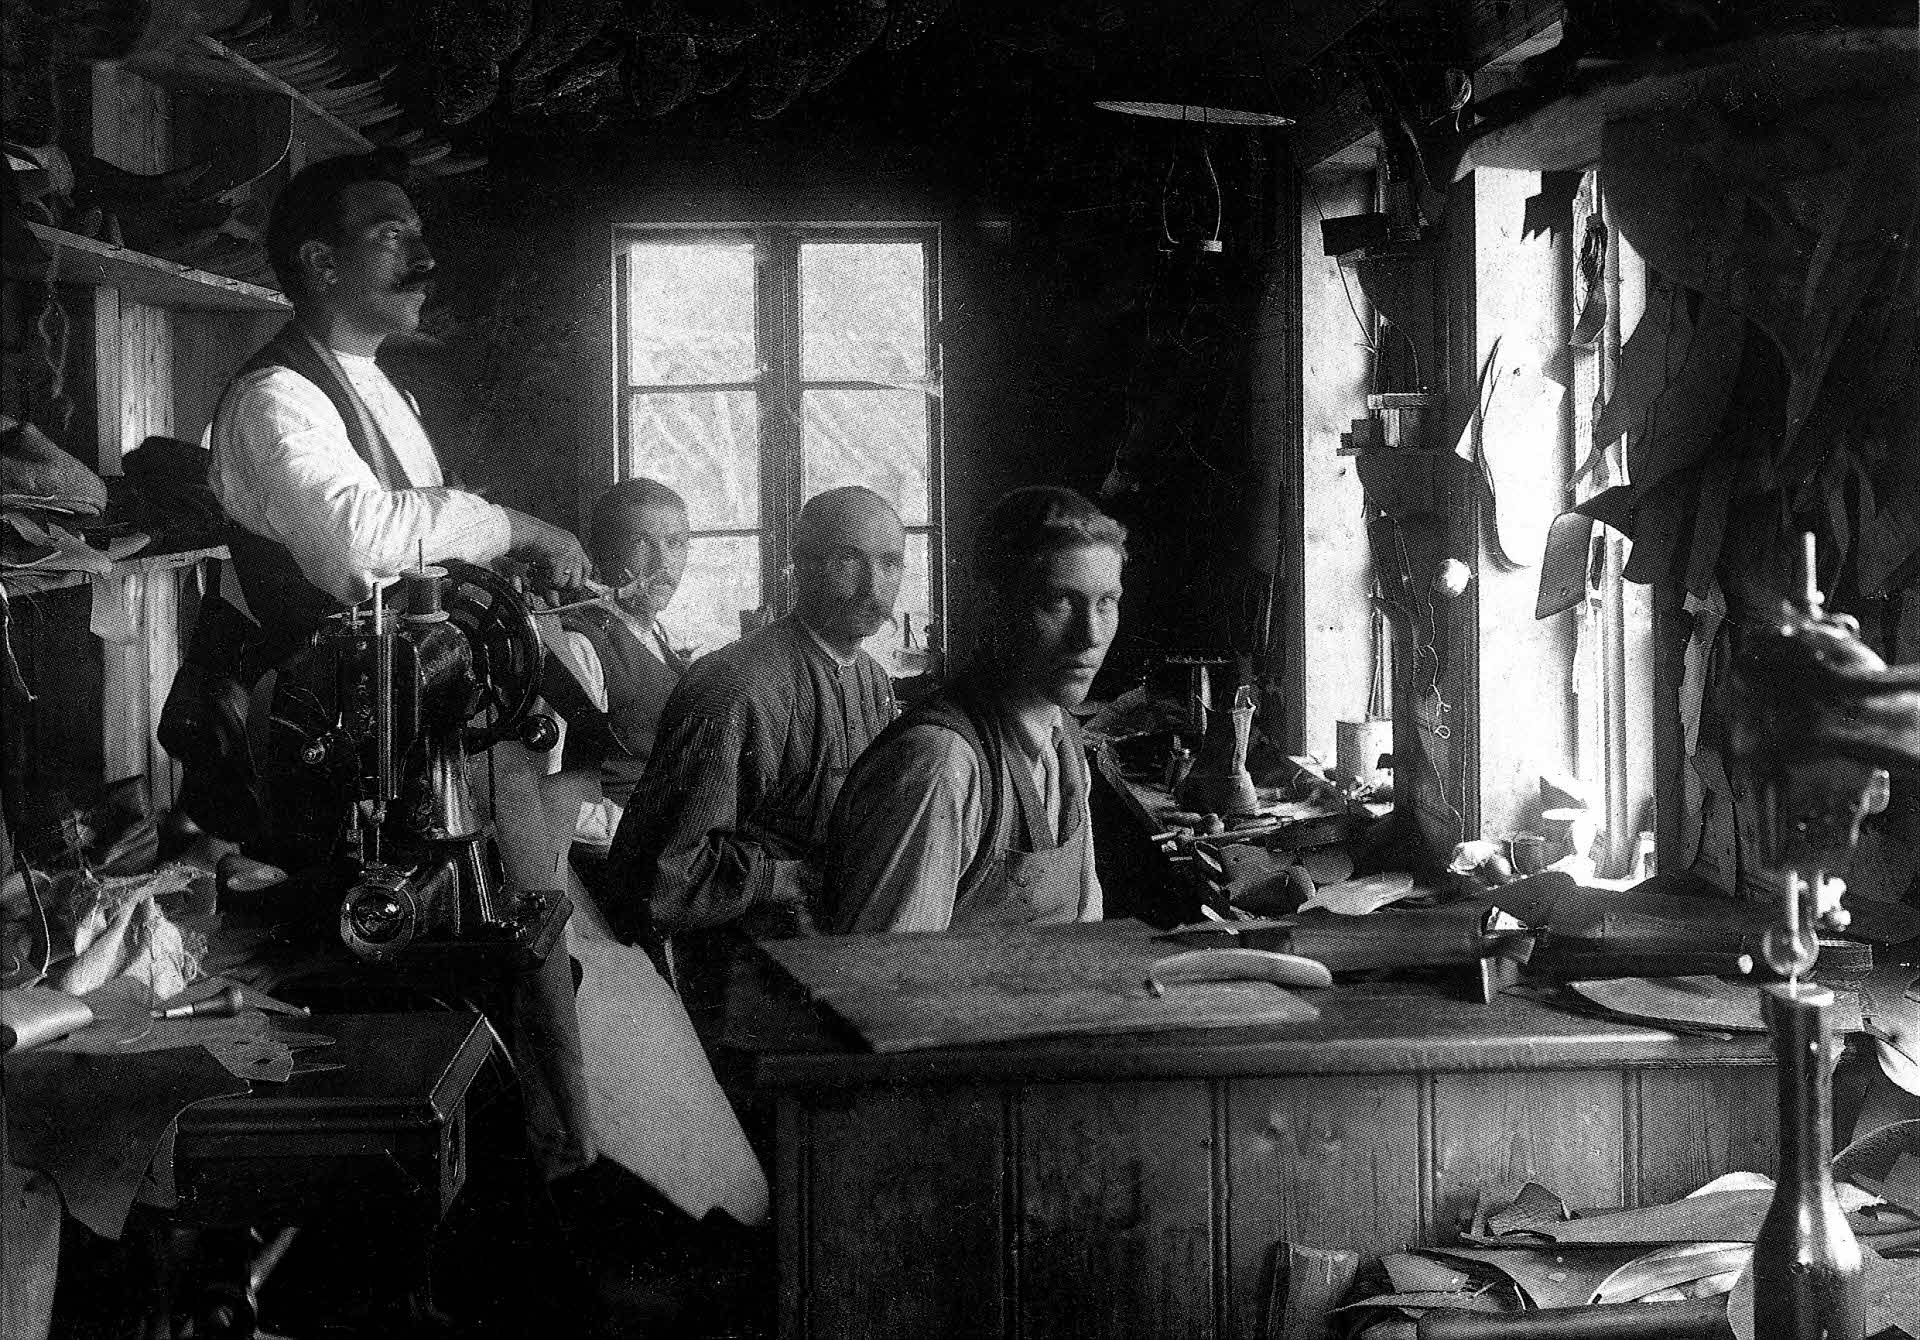 Historic photo of four men with moustache and serious faces in the 1930's sitting and working in the Aurland Shoe Factory.